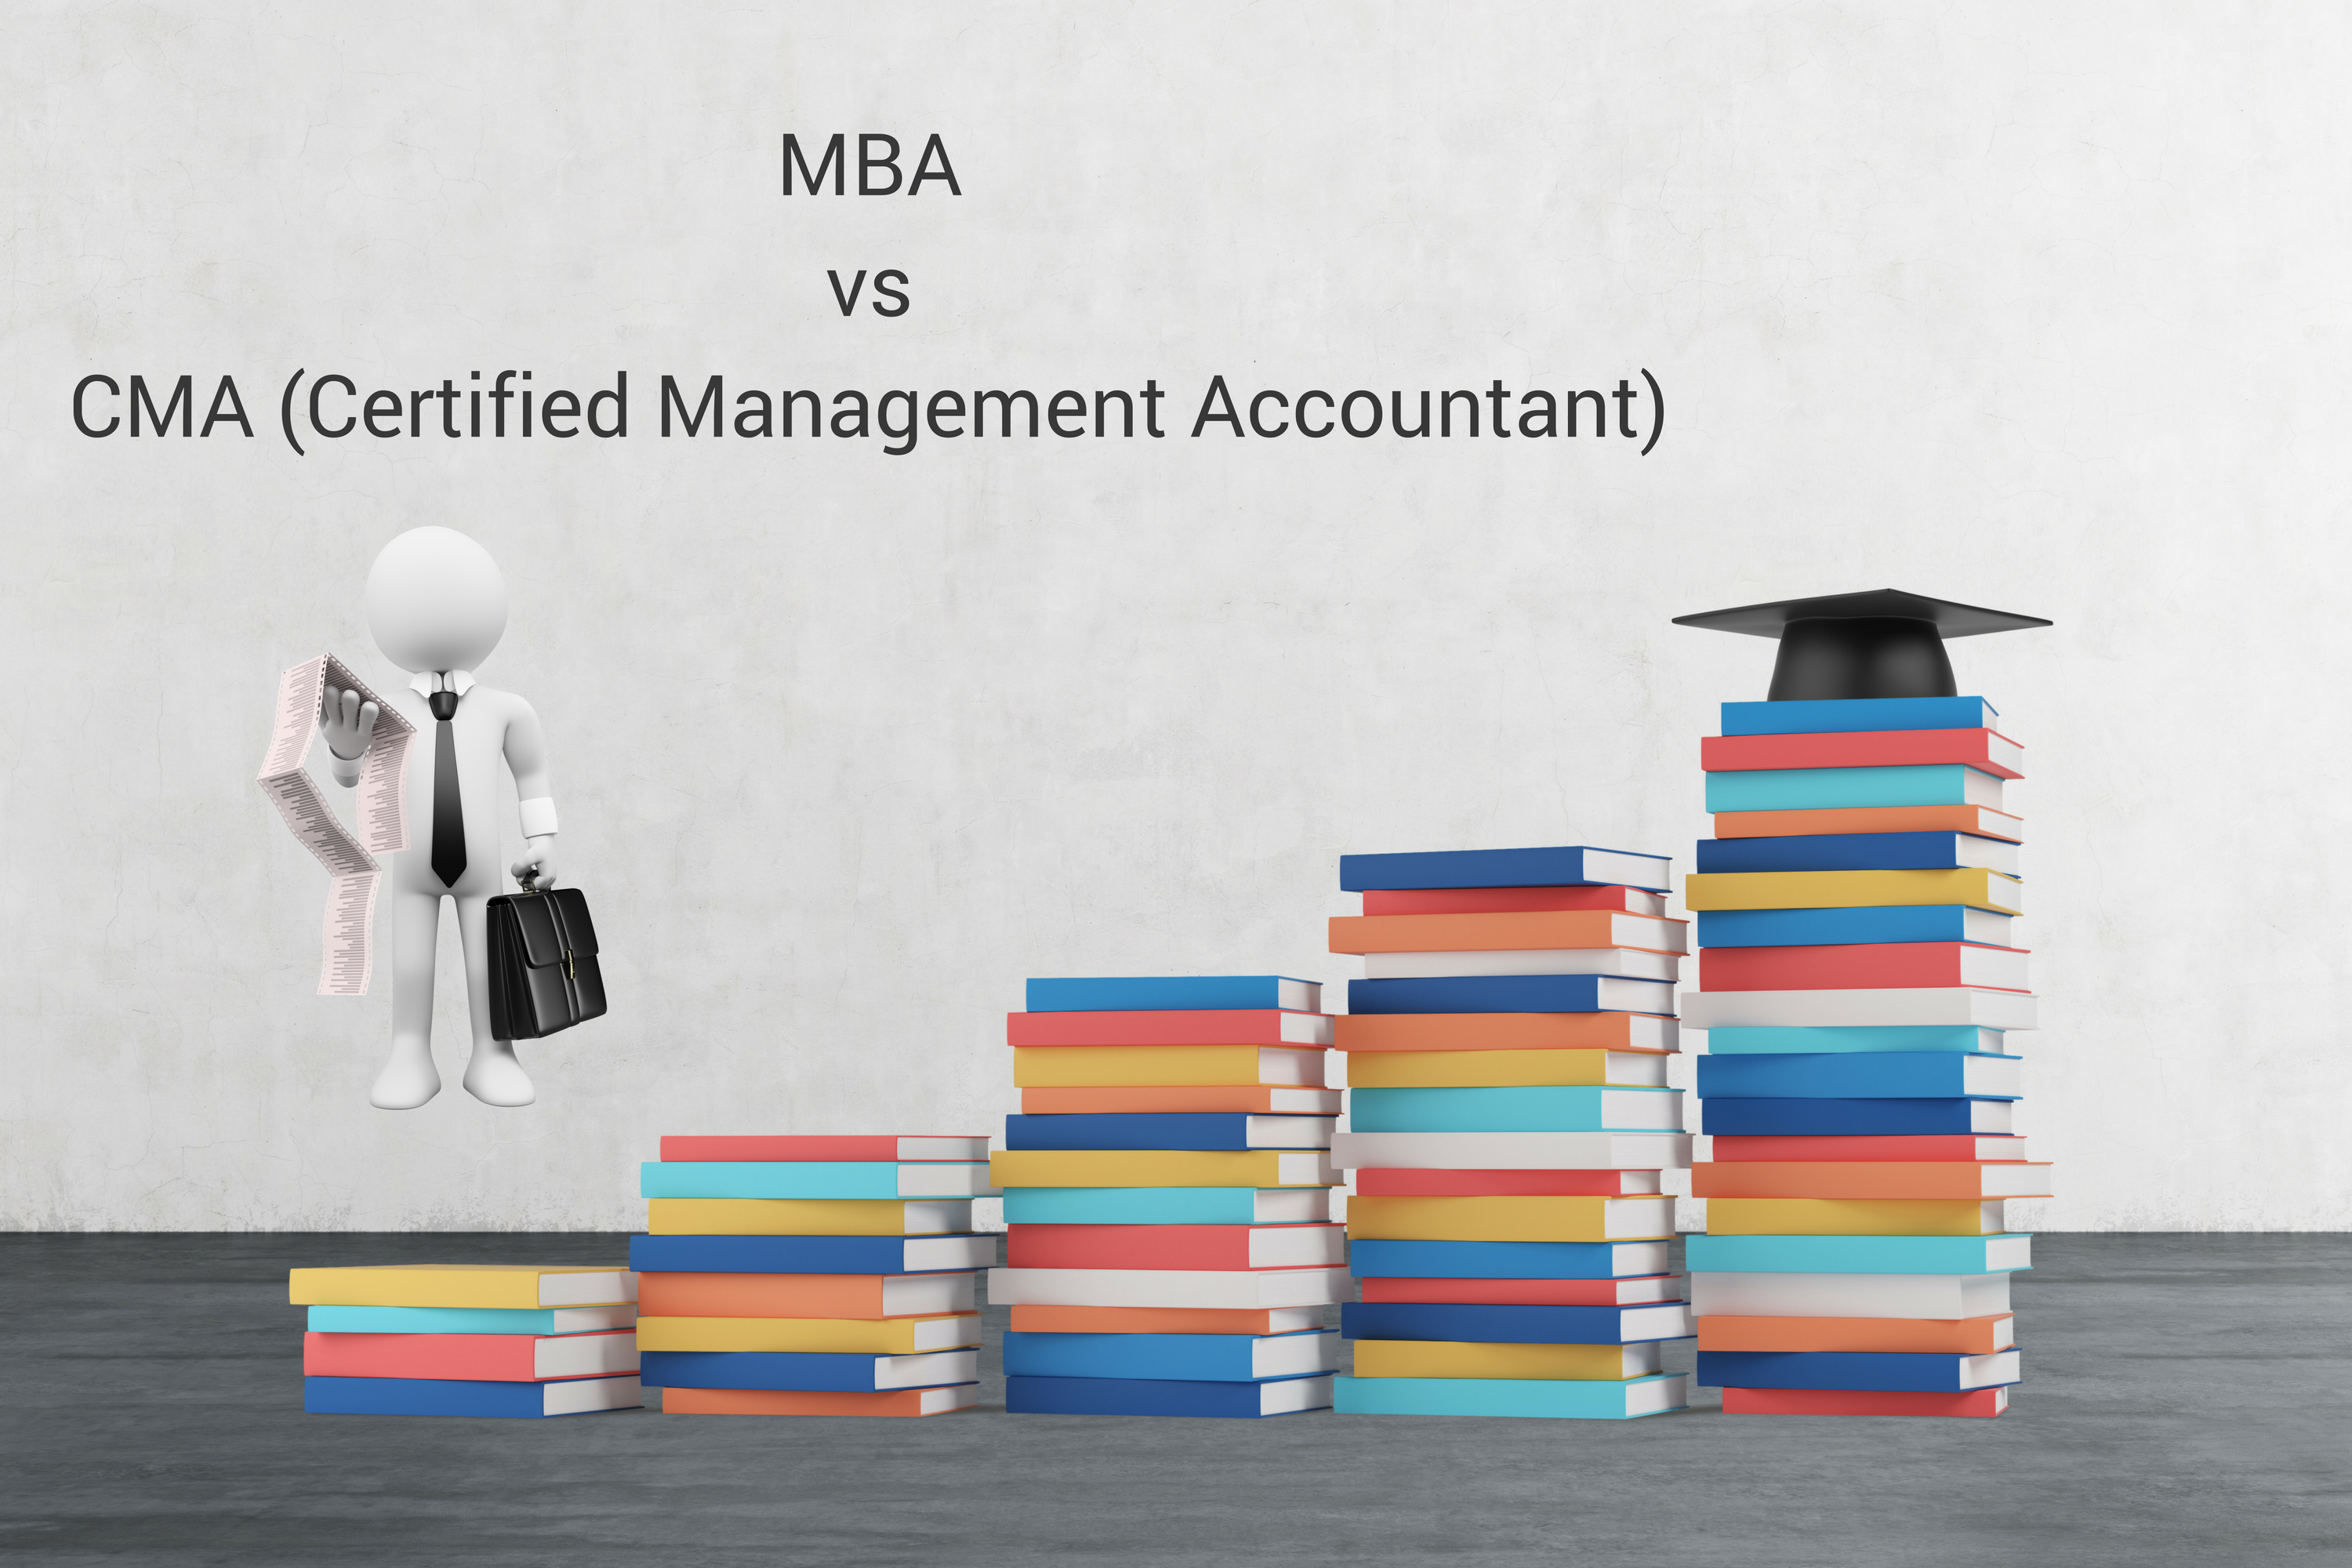 MBA vs  CMA (Certified Management Accountant) - examPAL GMAT